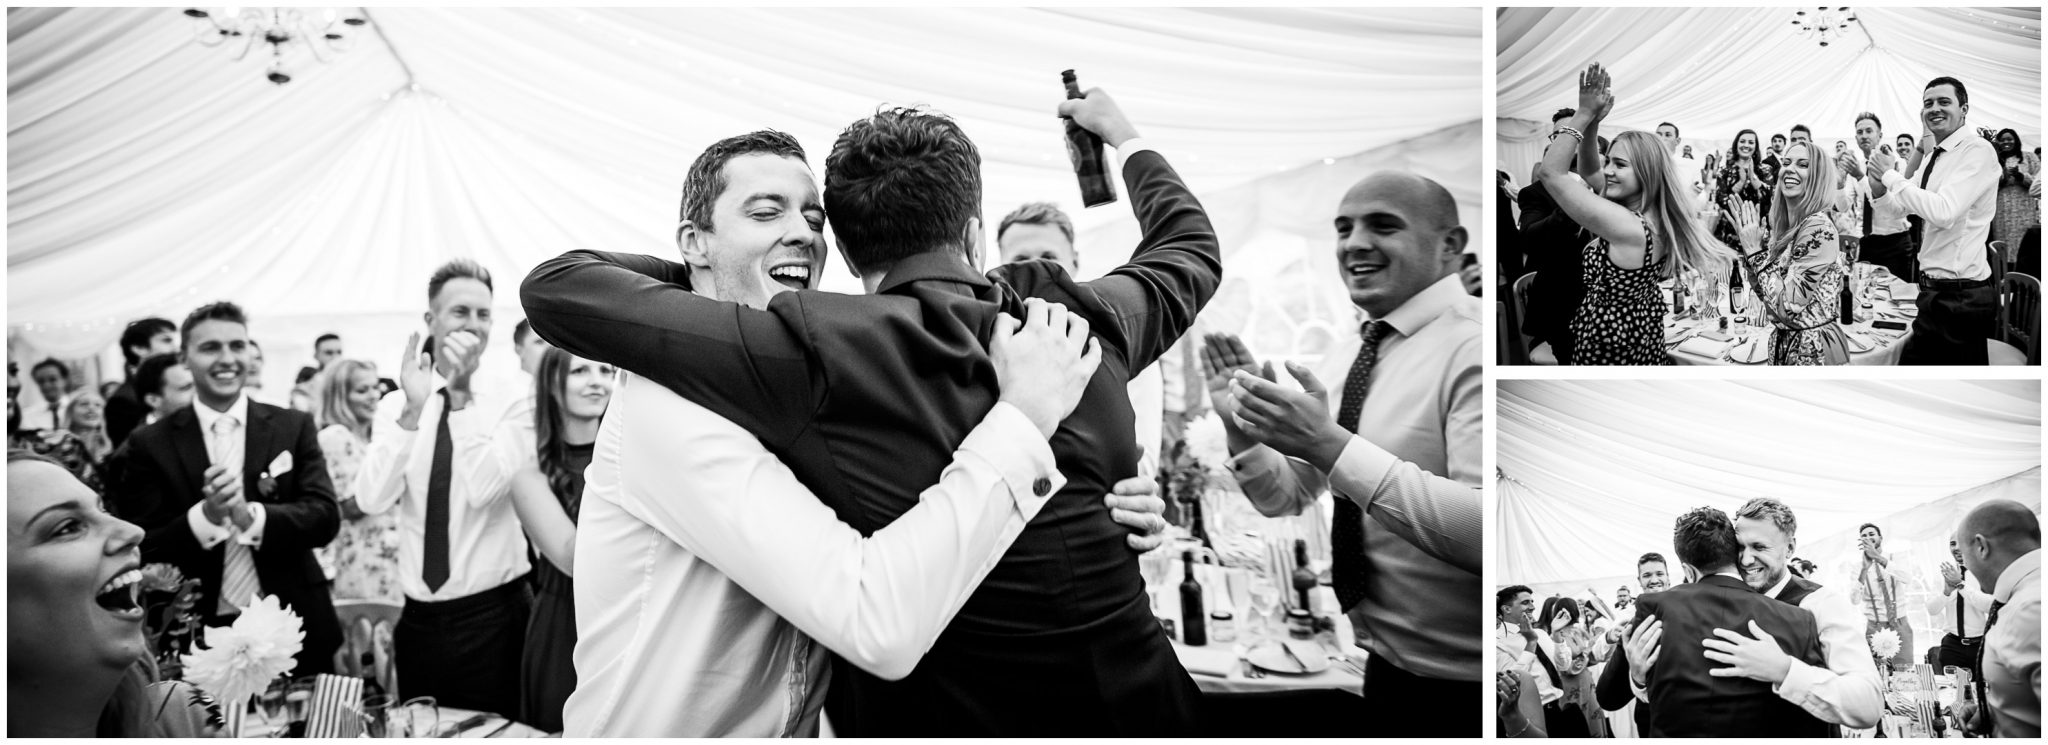 The groom is greeted enthusiastically by his friends